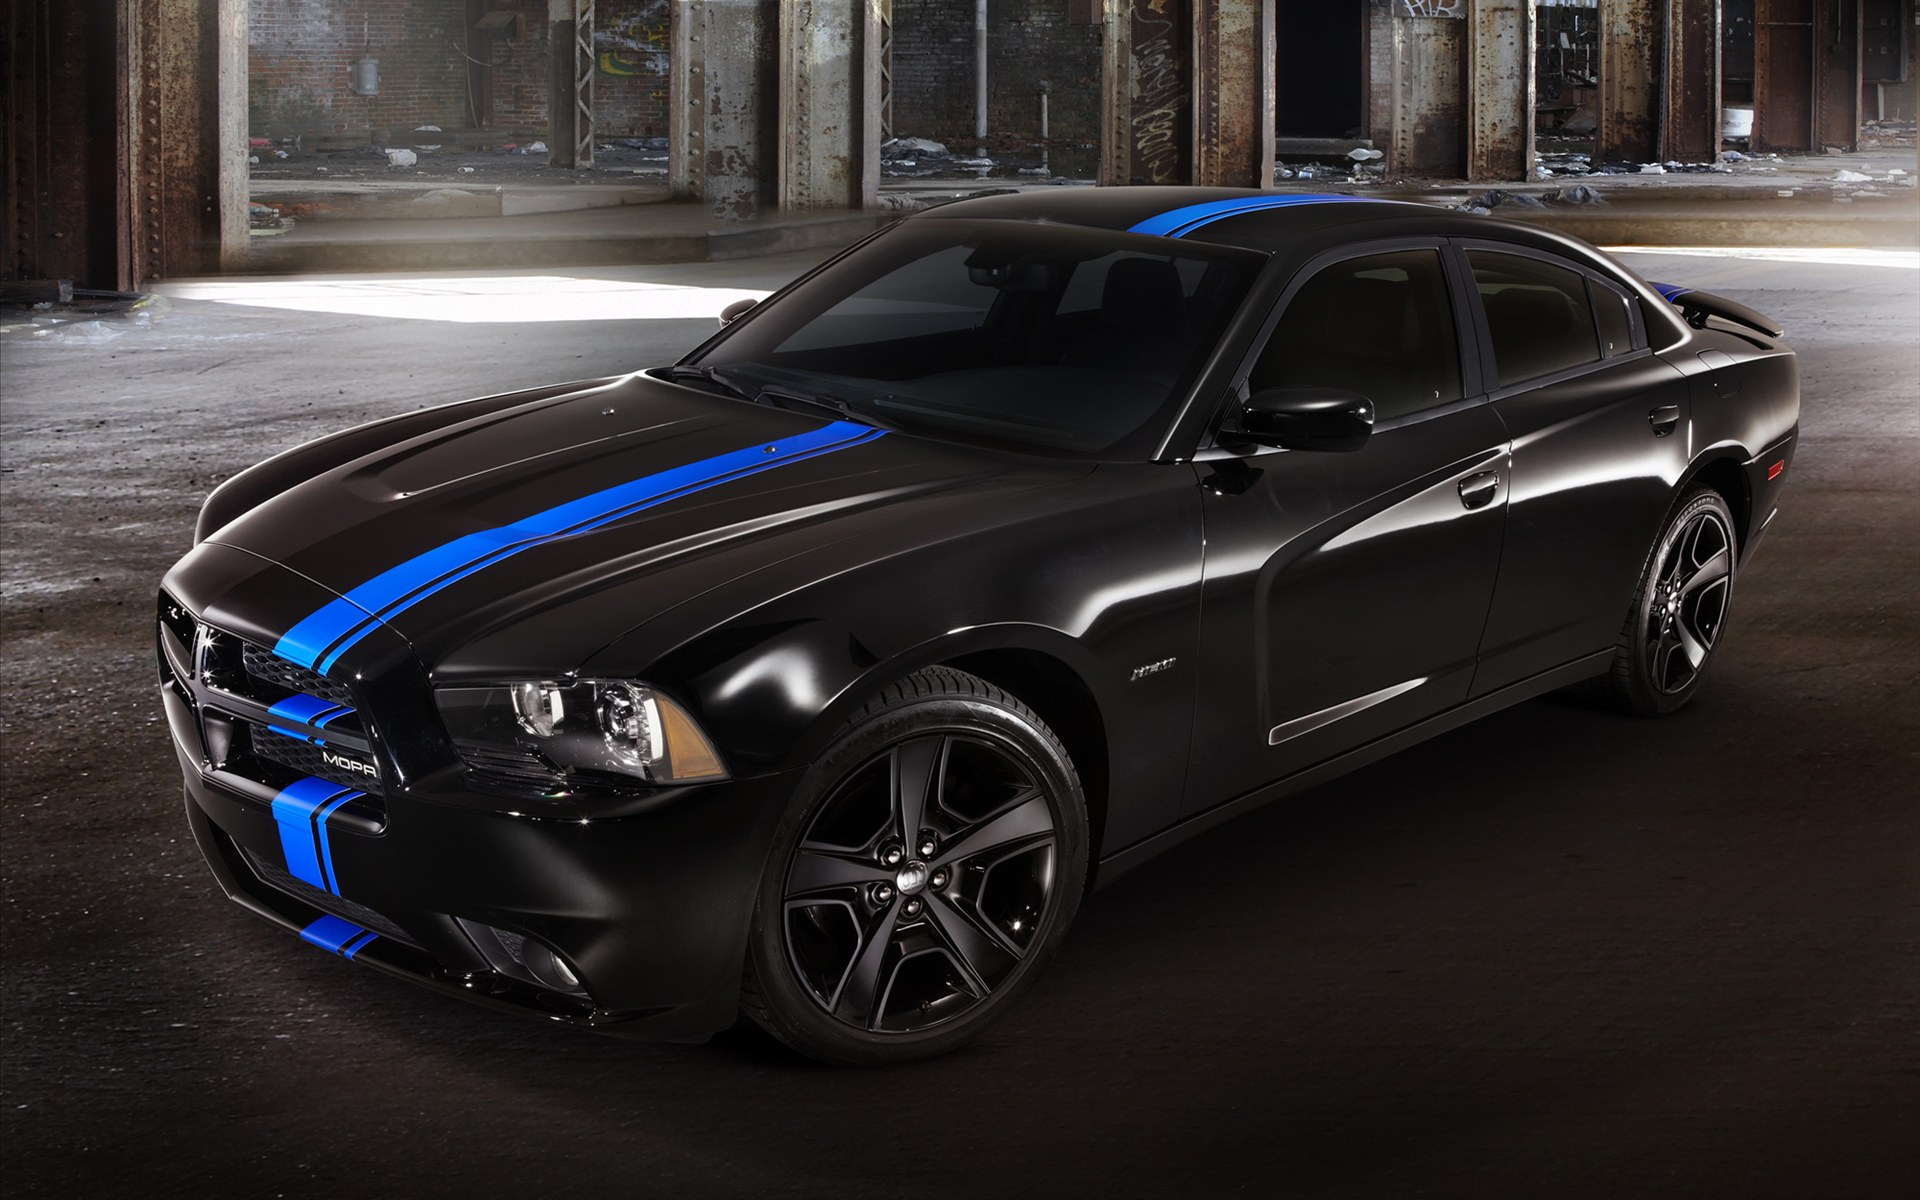 Dodge Charger Mopar 2011 wallpaper